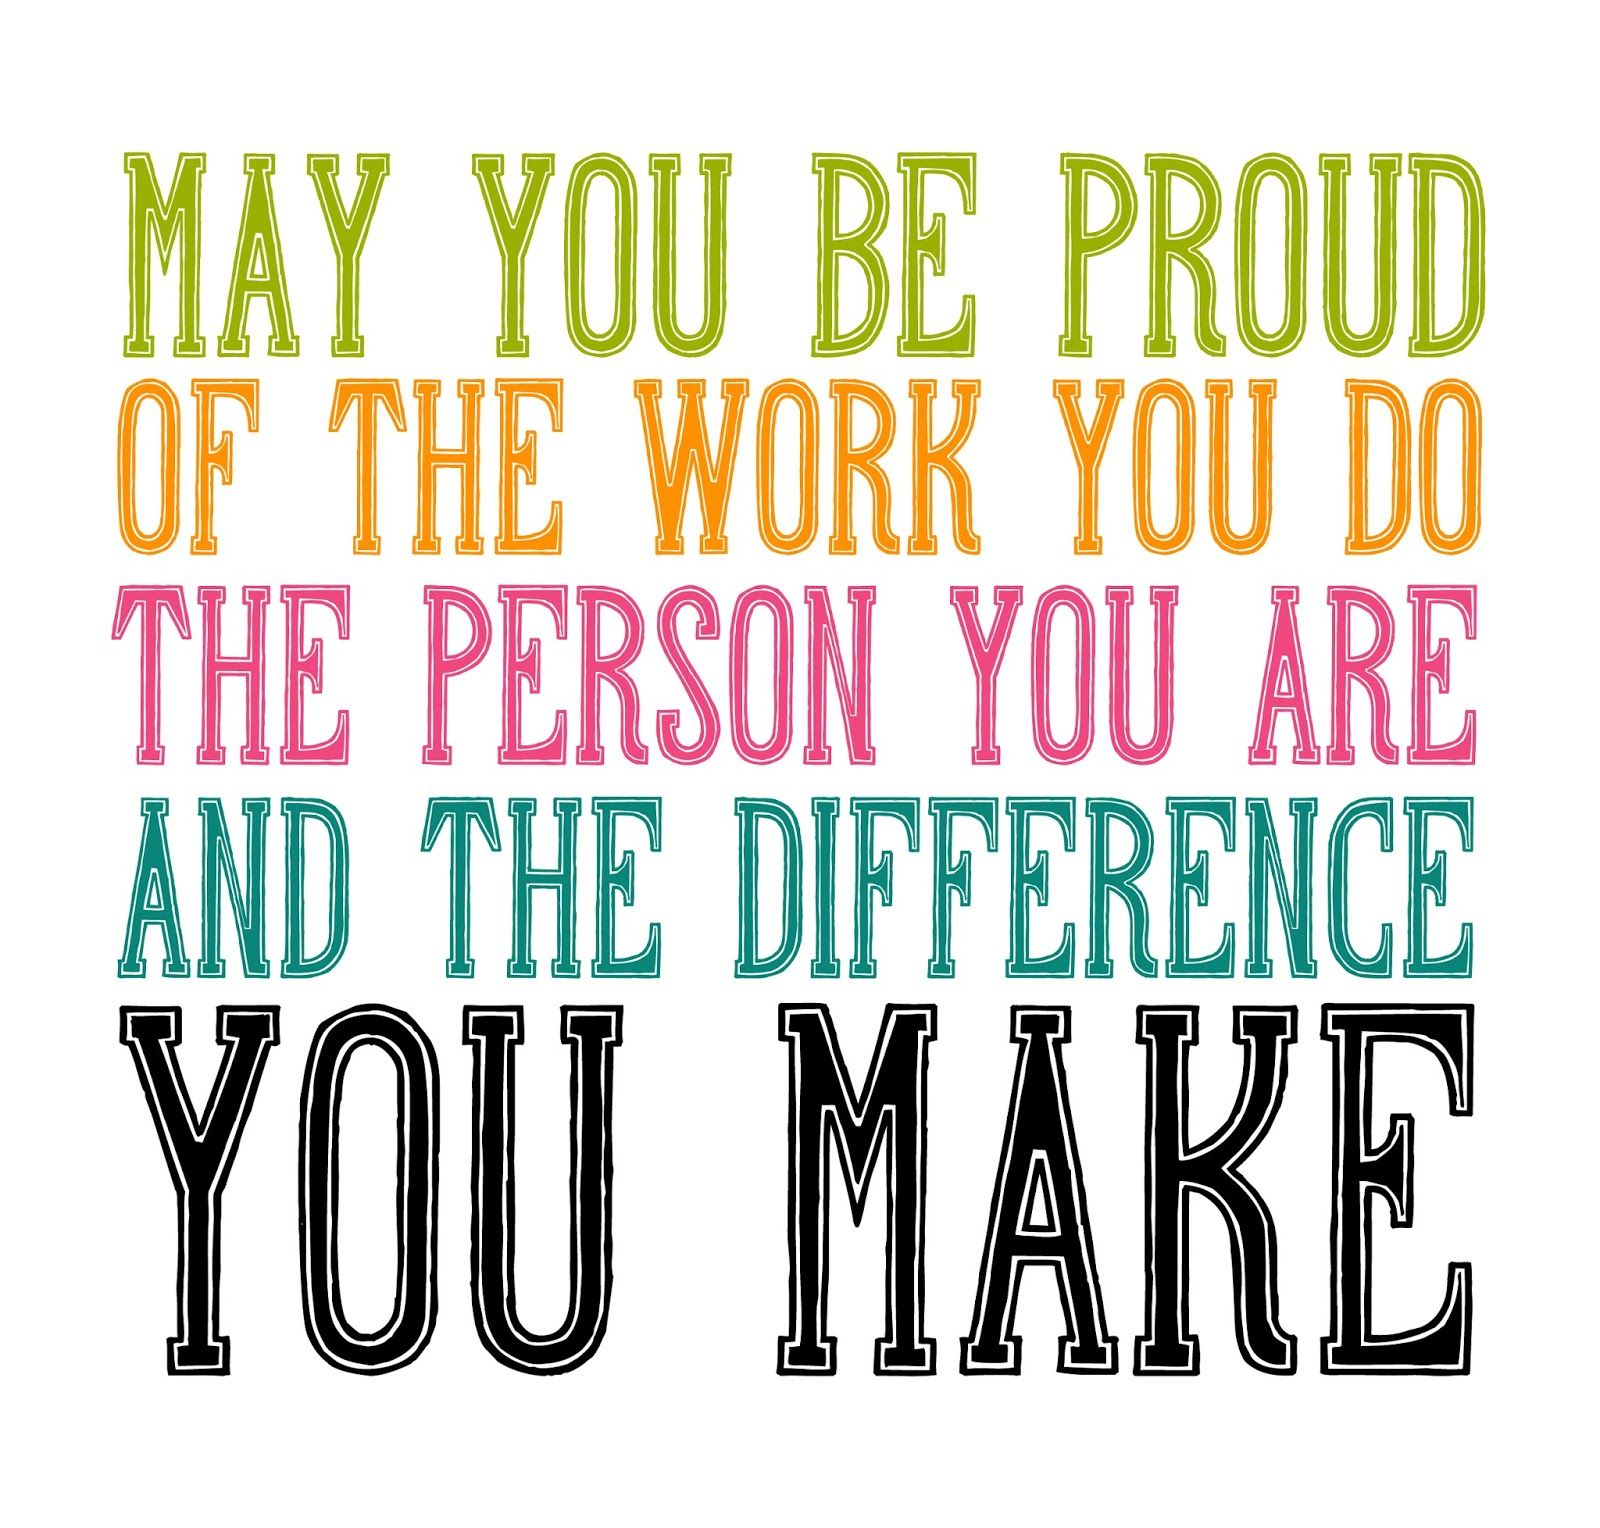 May You Be Proud Of The Work You Do The Person You Are And The